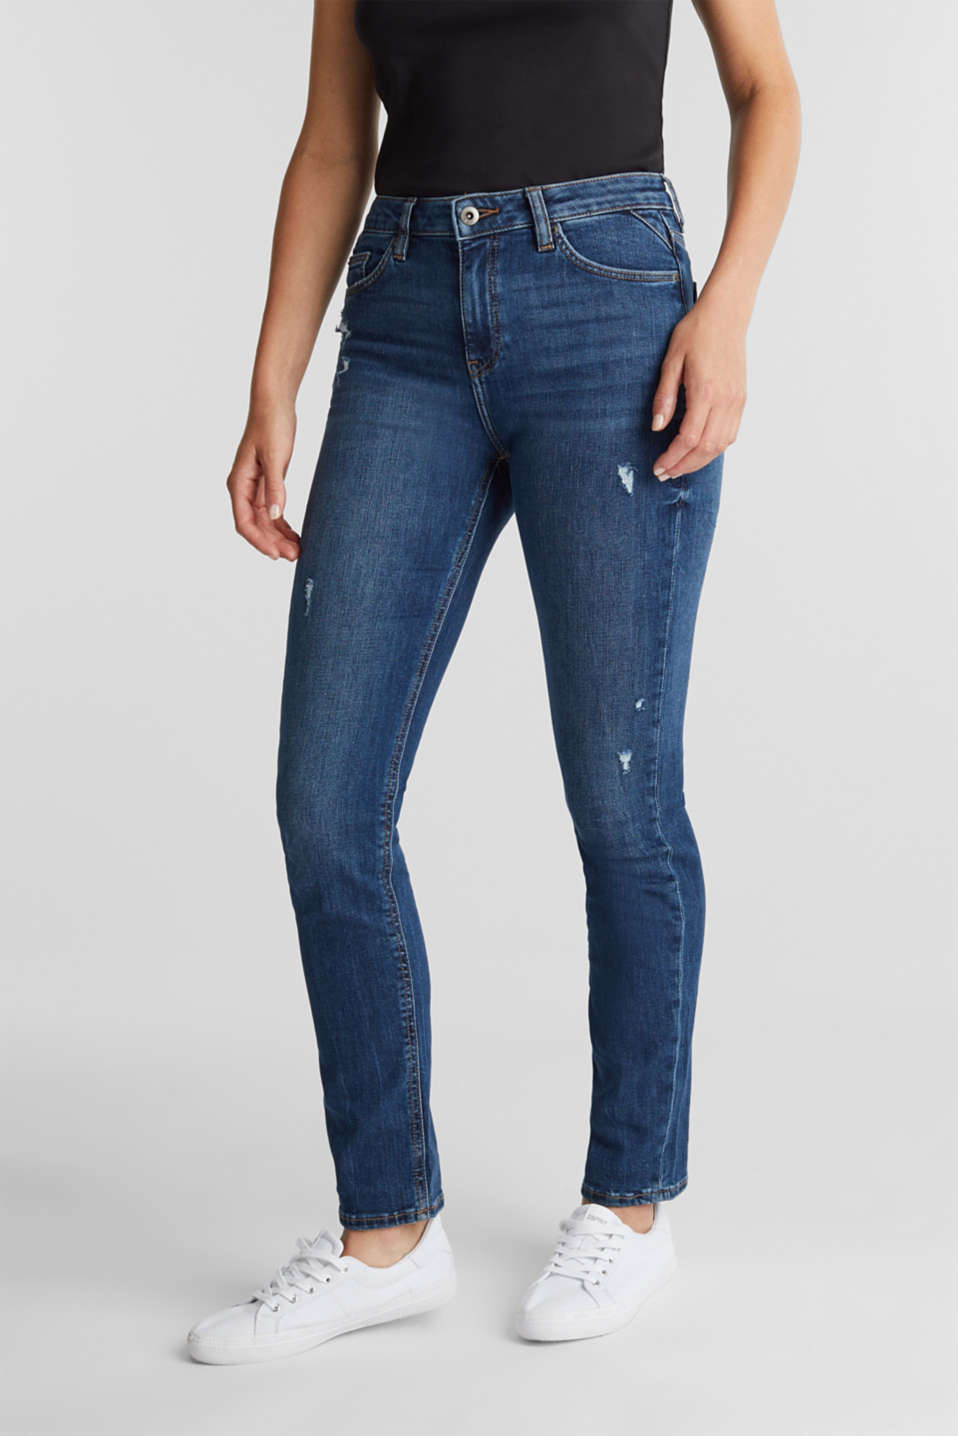 edc - Ankle-length jeans with a vintage finish